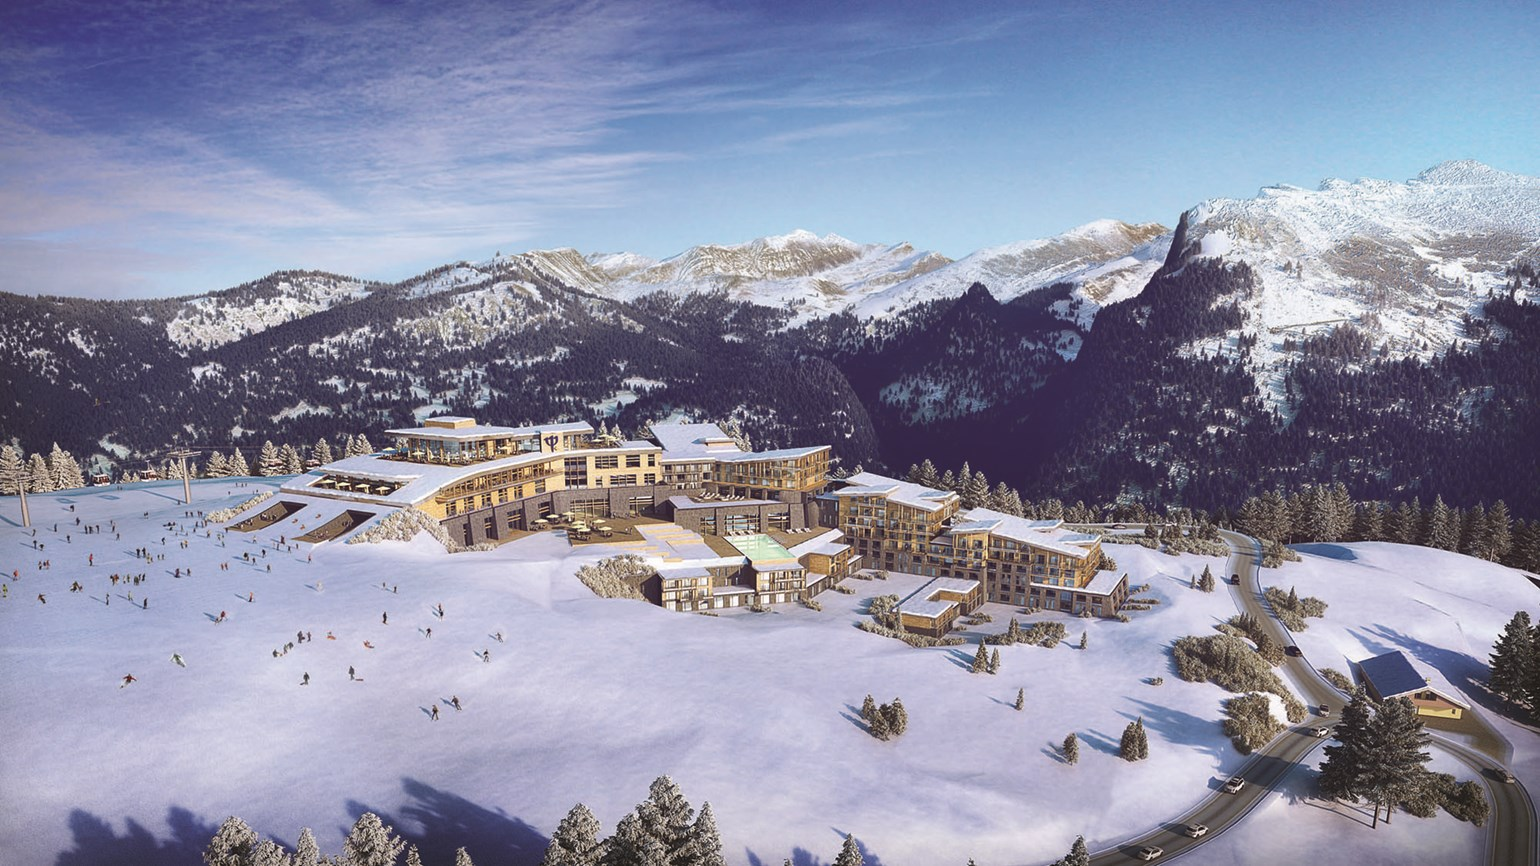 Club med ski resort to open in French Alps